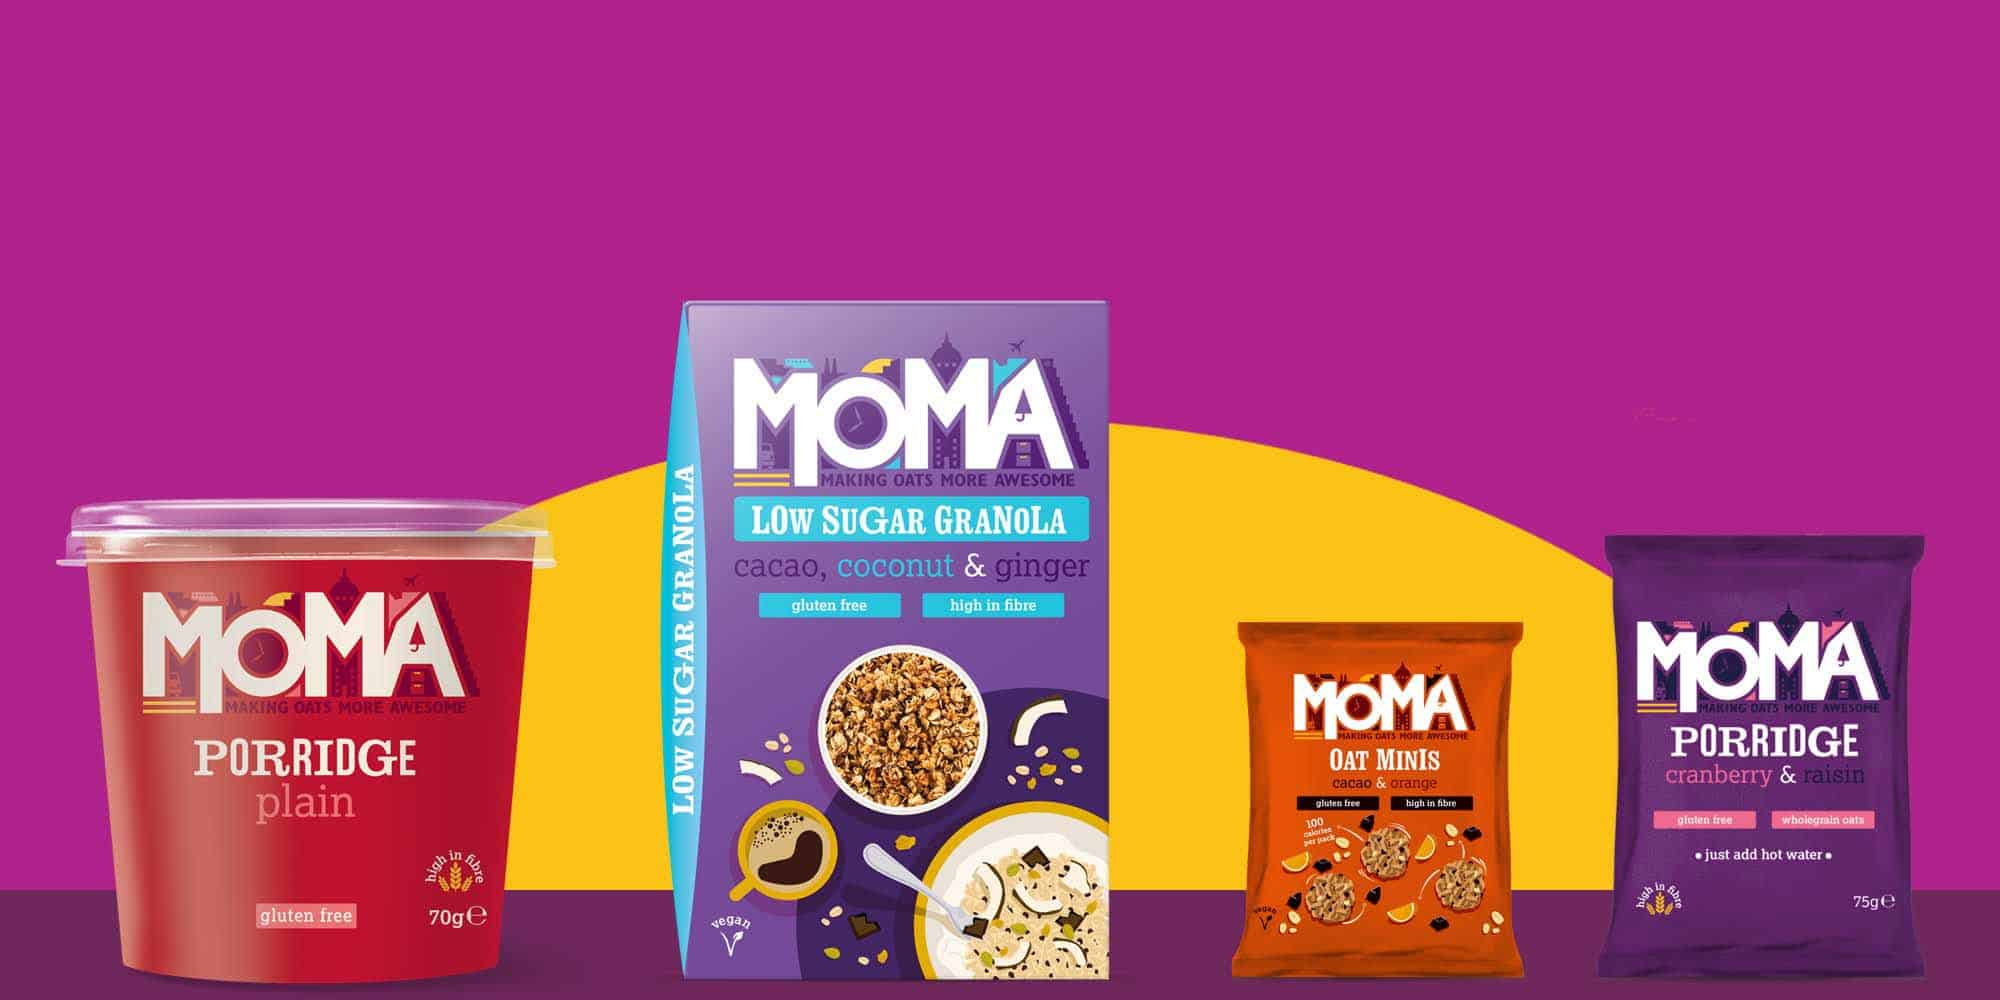 MOMA Porridge SWITZERLAND banner featuring all product types